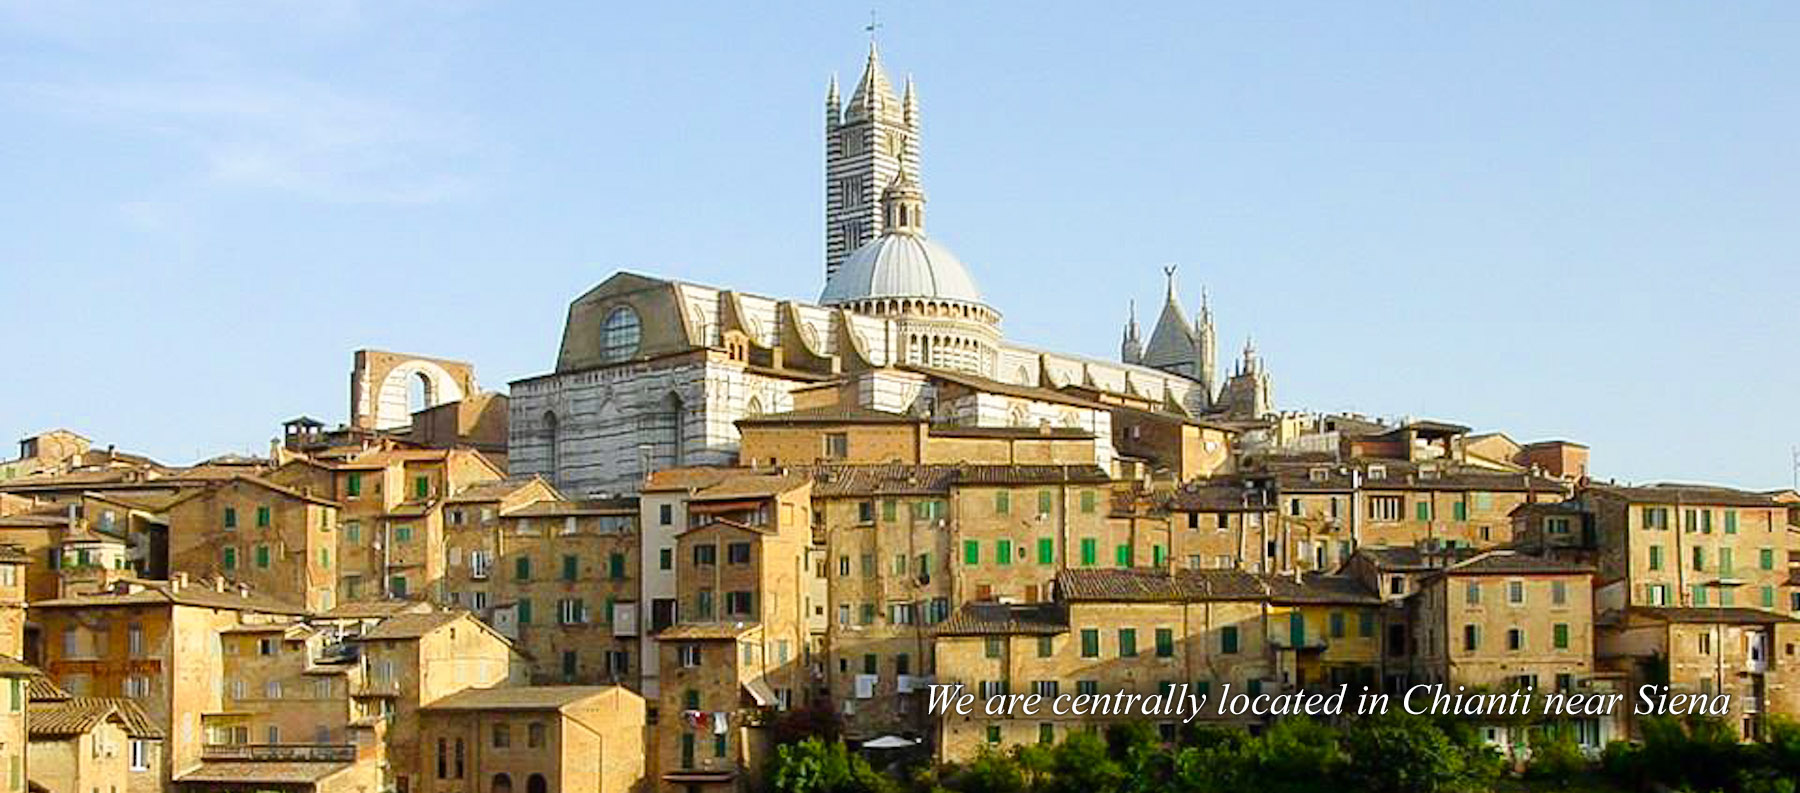 We are centrally located in Chianti near Siena - Best places to visit in Tuscany